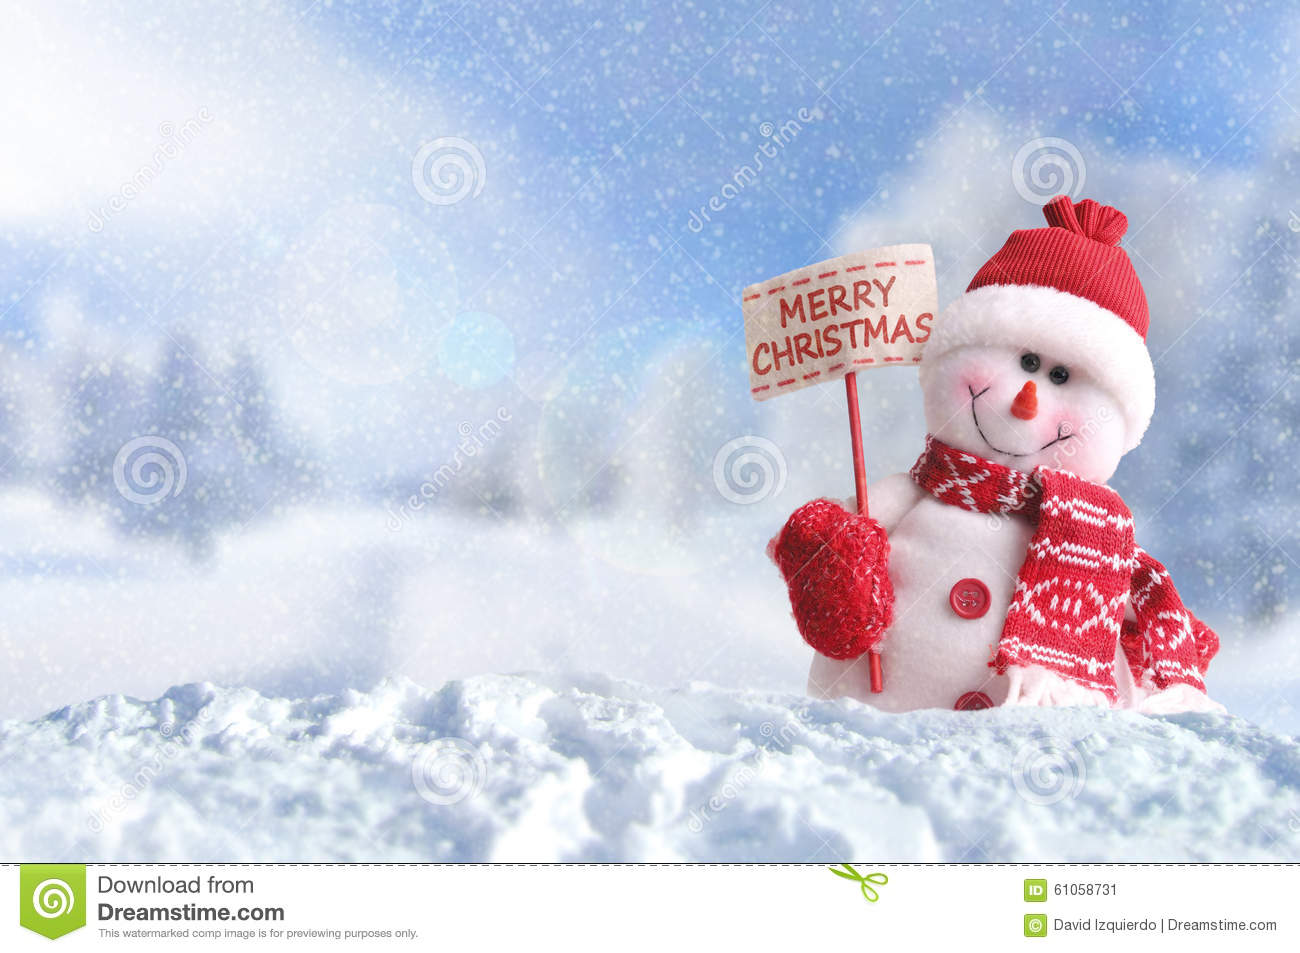 Snowman With A Placard Merry Christmas On The Snow Stock